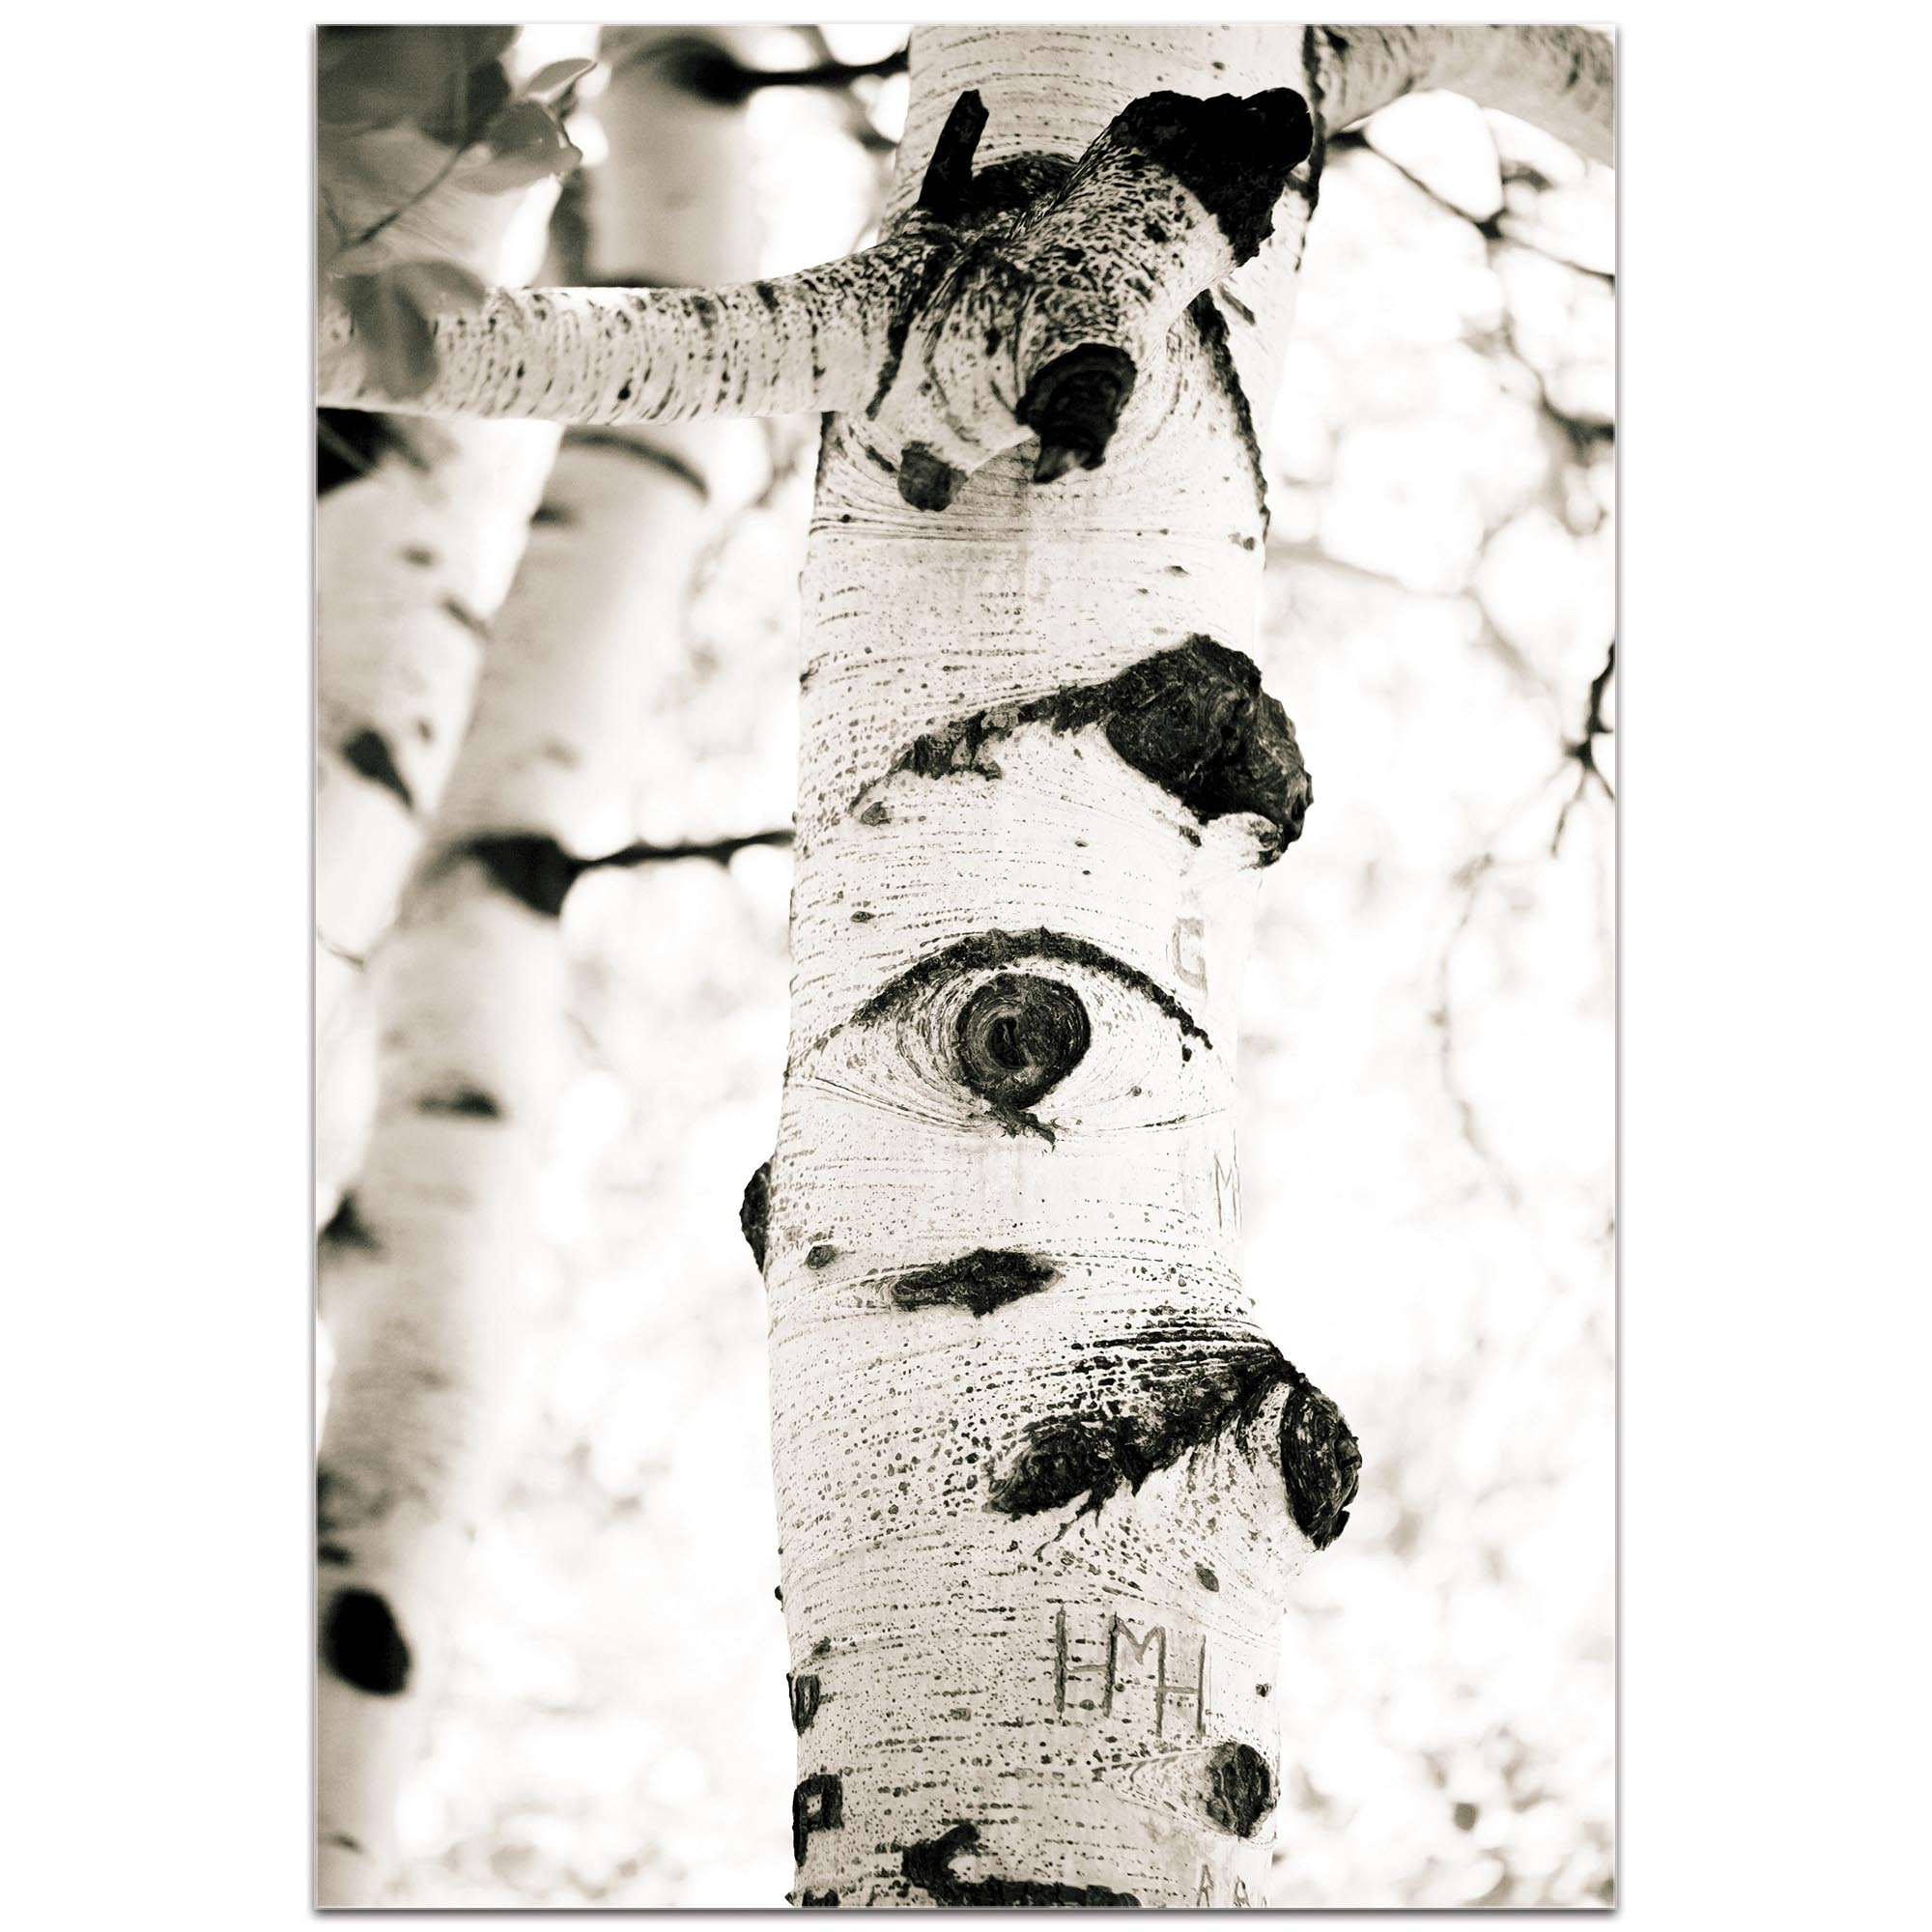 Landscape Photography 'Aspen Eyes' - Nature Scene Art on Metal or Plexiglass - Image 2